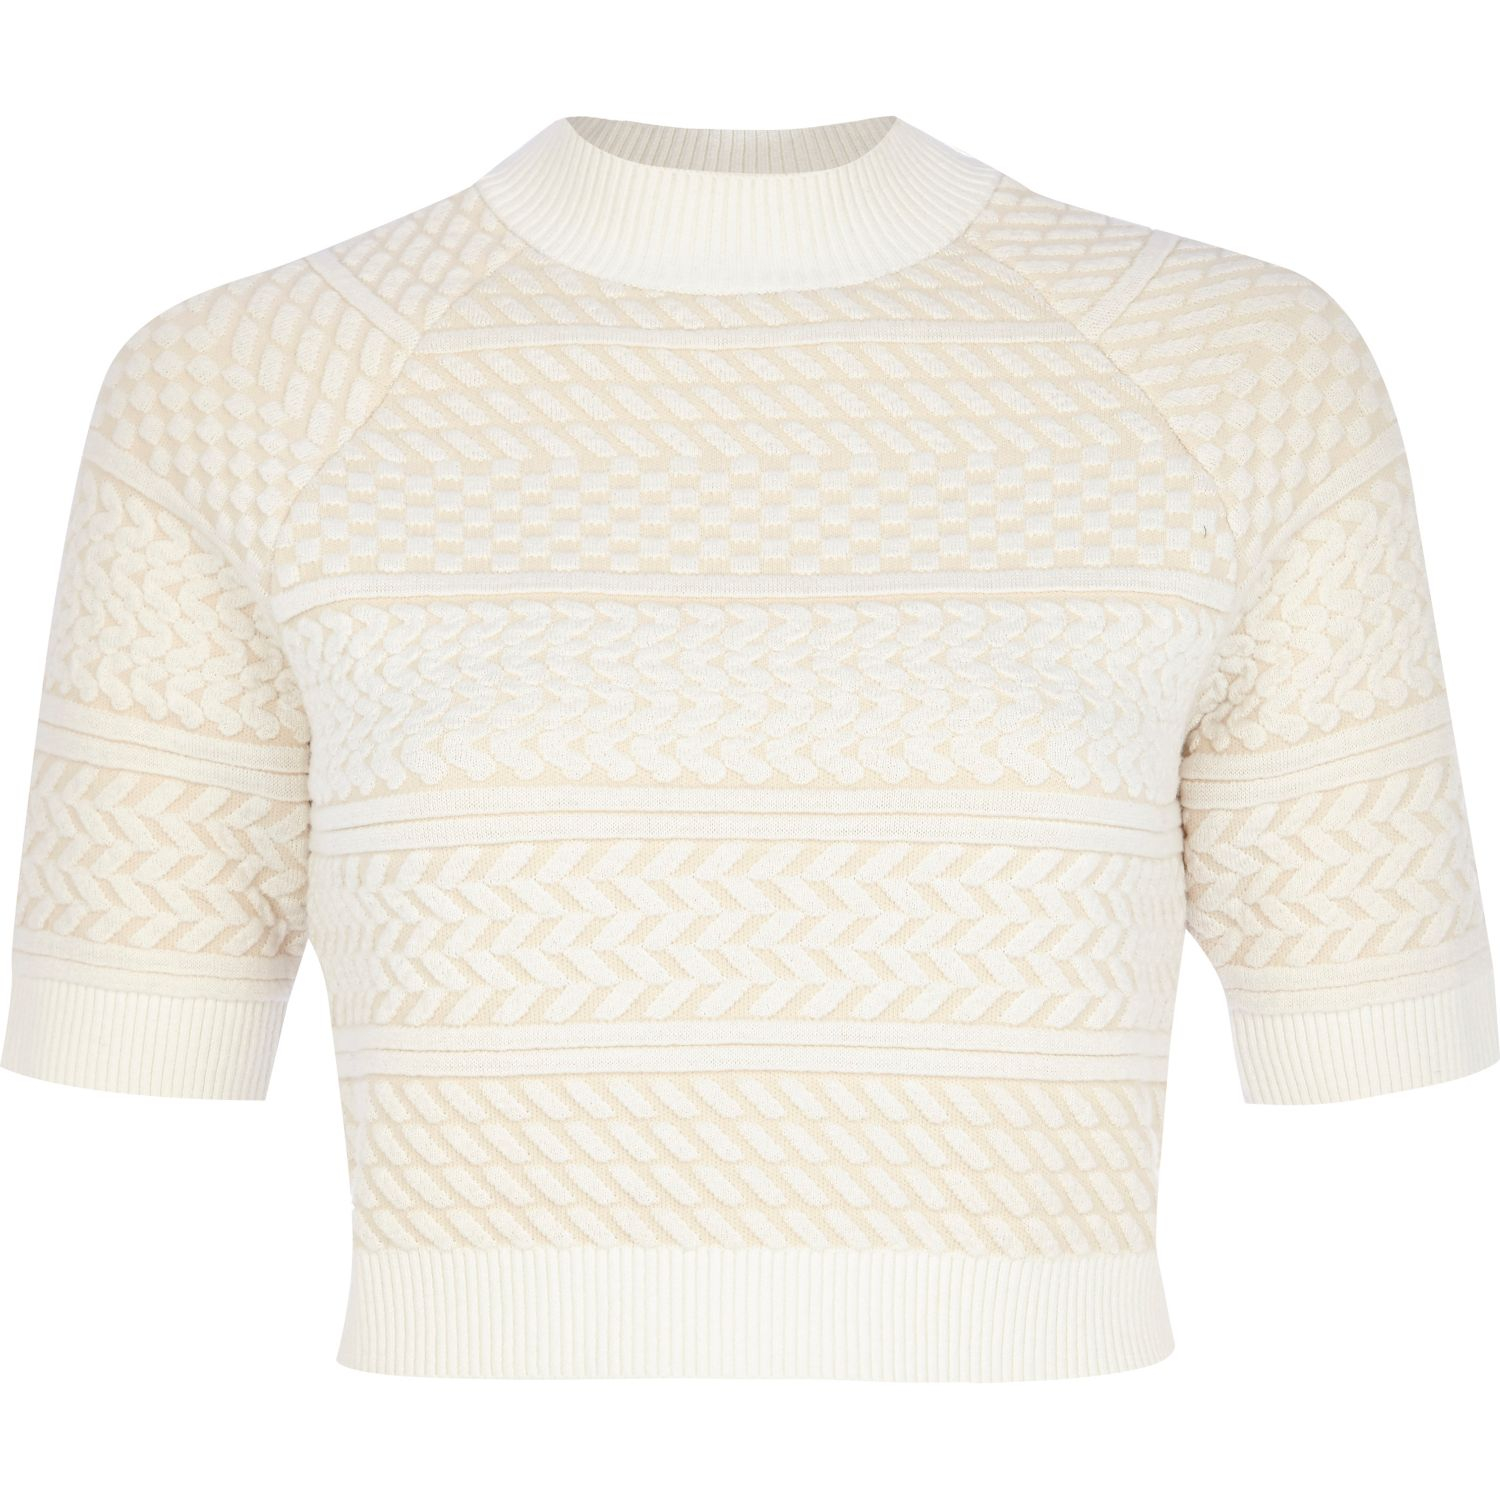 1adf3774e6b901 River Island Cream Textured Knitted Crop Top in Natural - Lyst